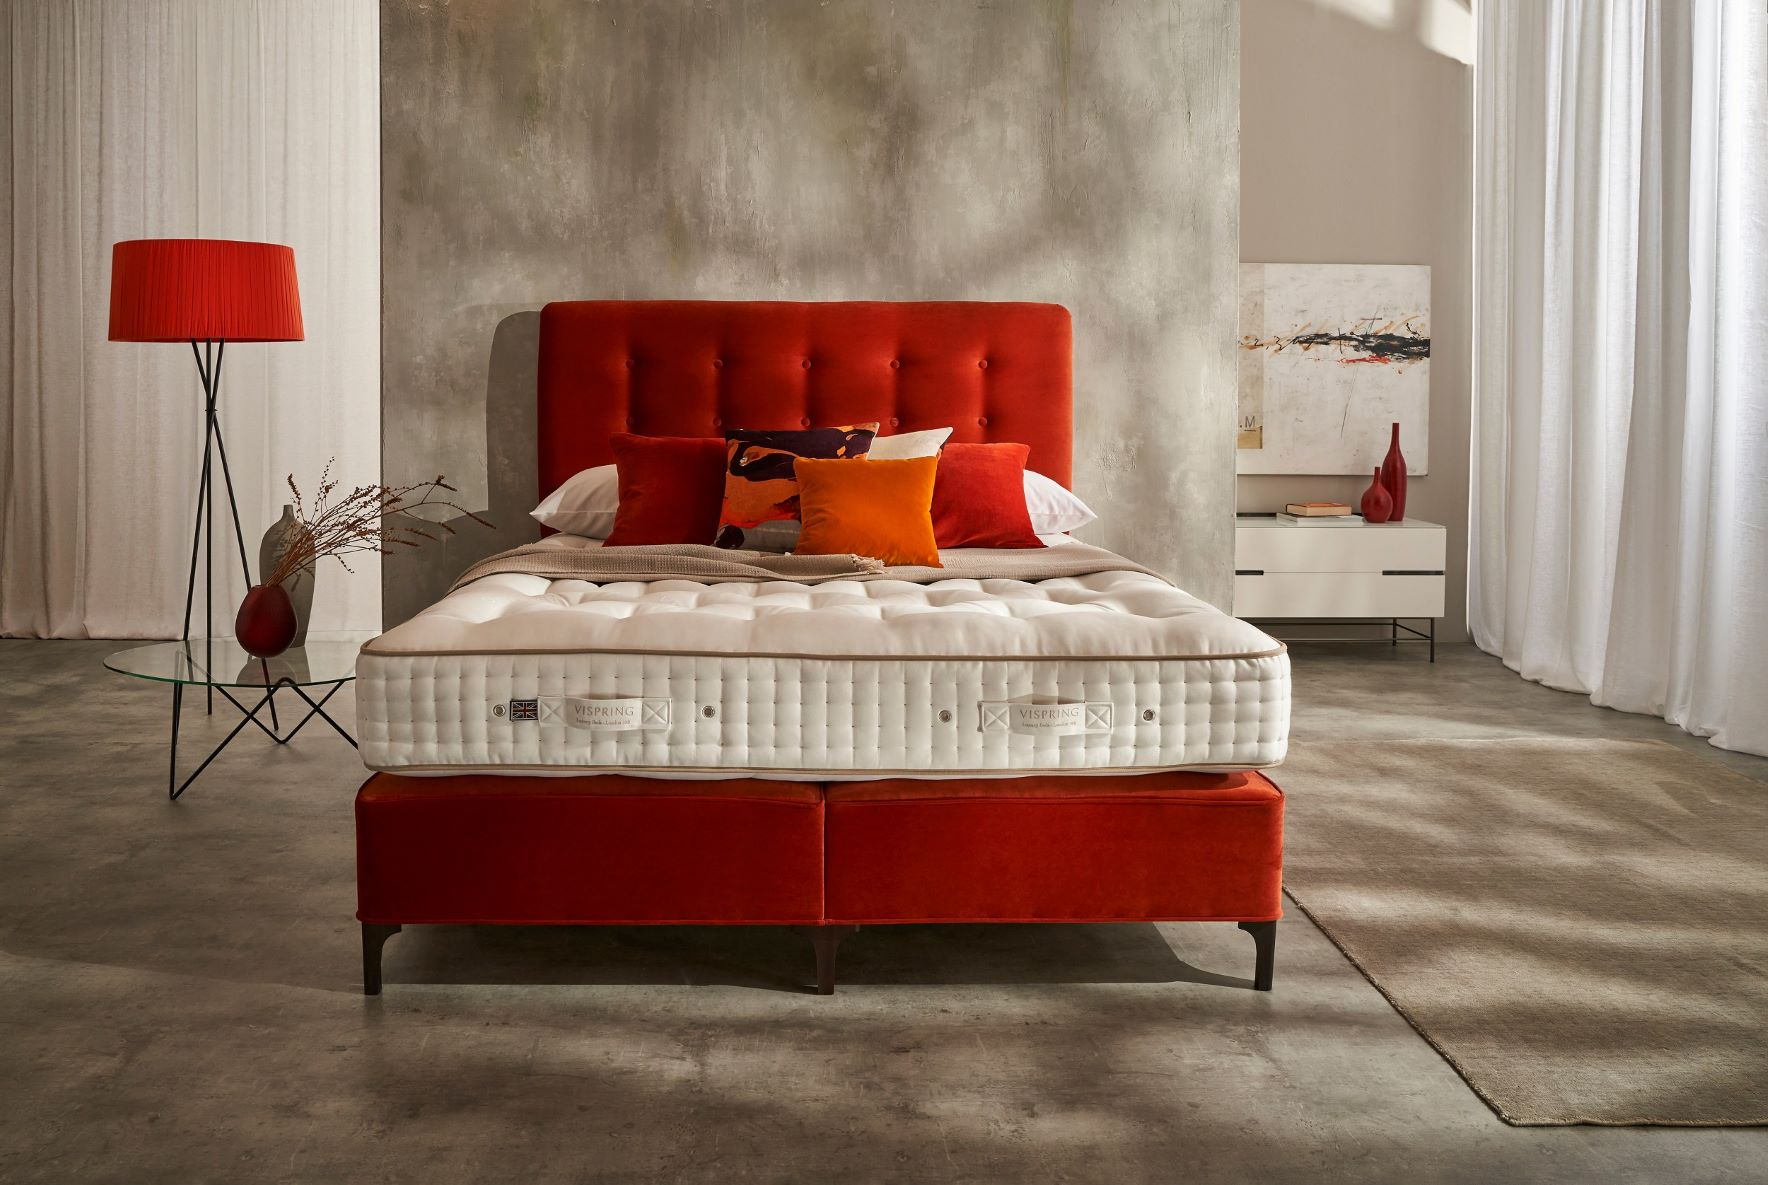 Shop Luxury Sleep with H. Alora's Labor Day Sales Event!